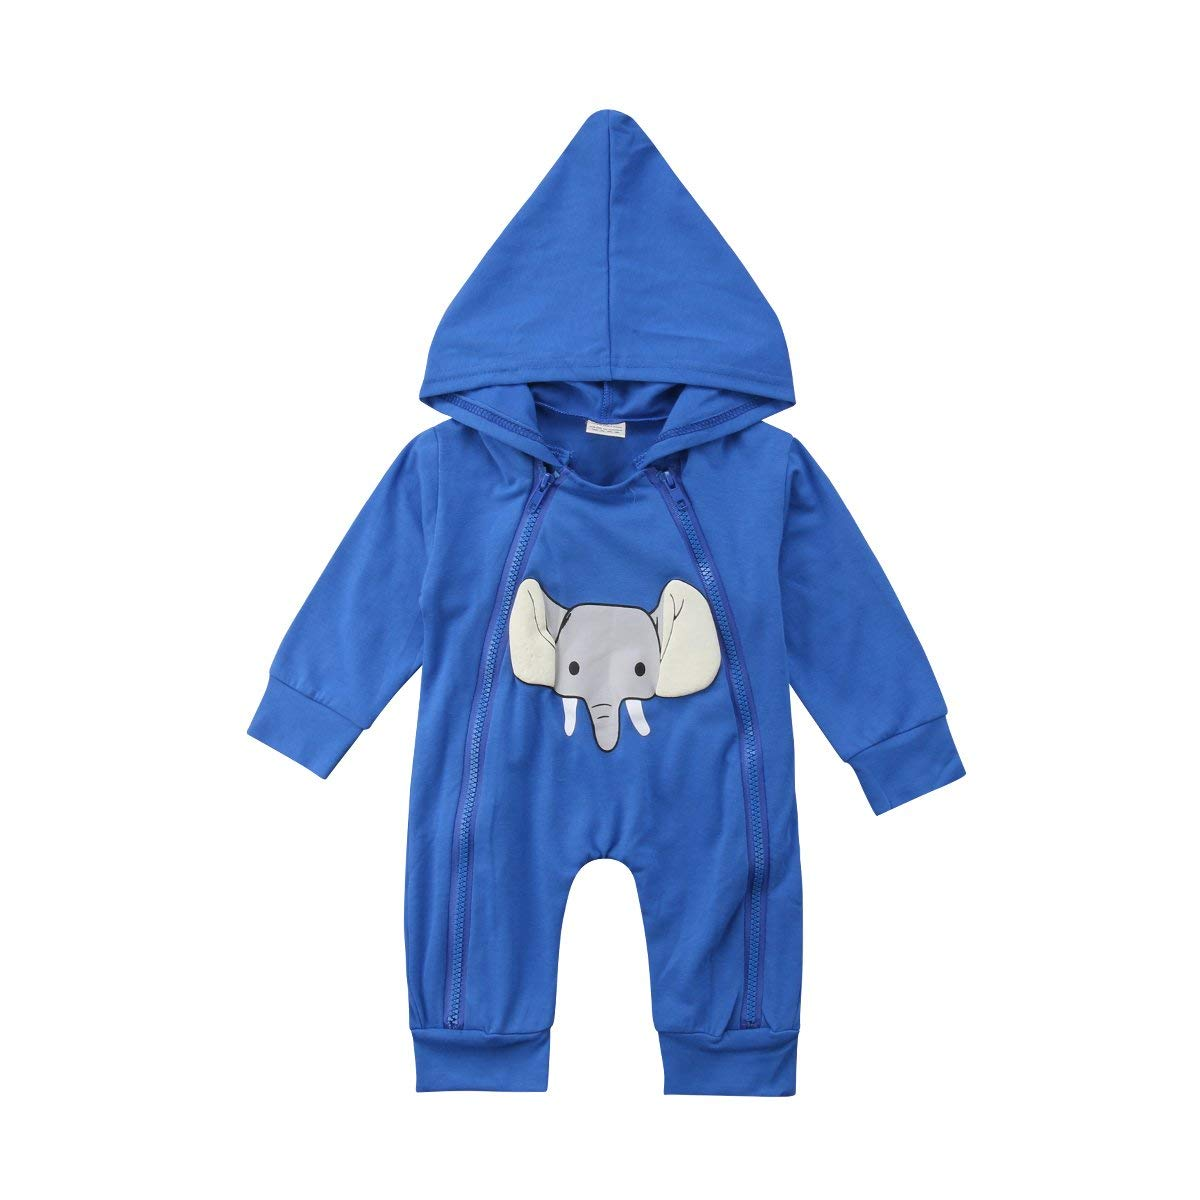 c152683d549 Get Quotations · Newborn Infant Baby Boy Girl Cartoon Elephant Zipper Romper  Jumpsuit Sleeper Bodysuit One-Piece Outfits